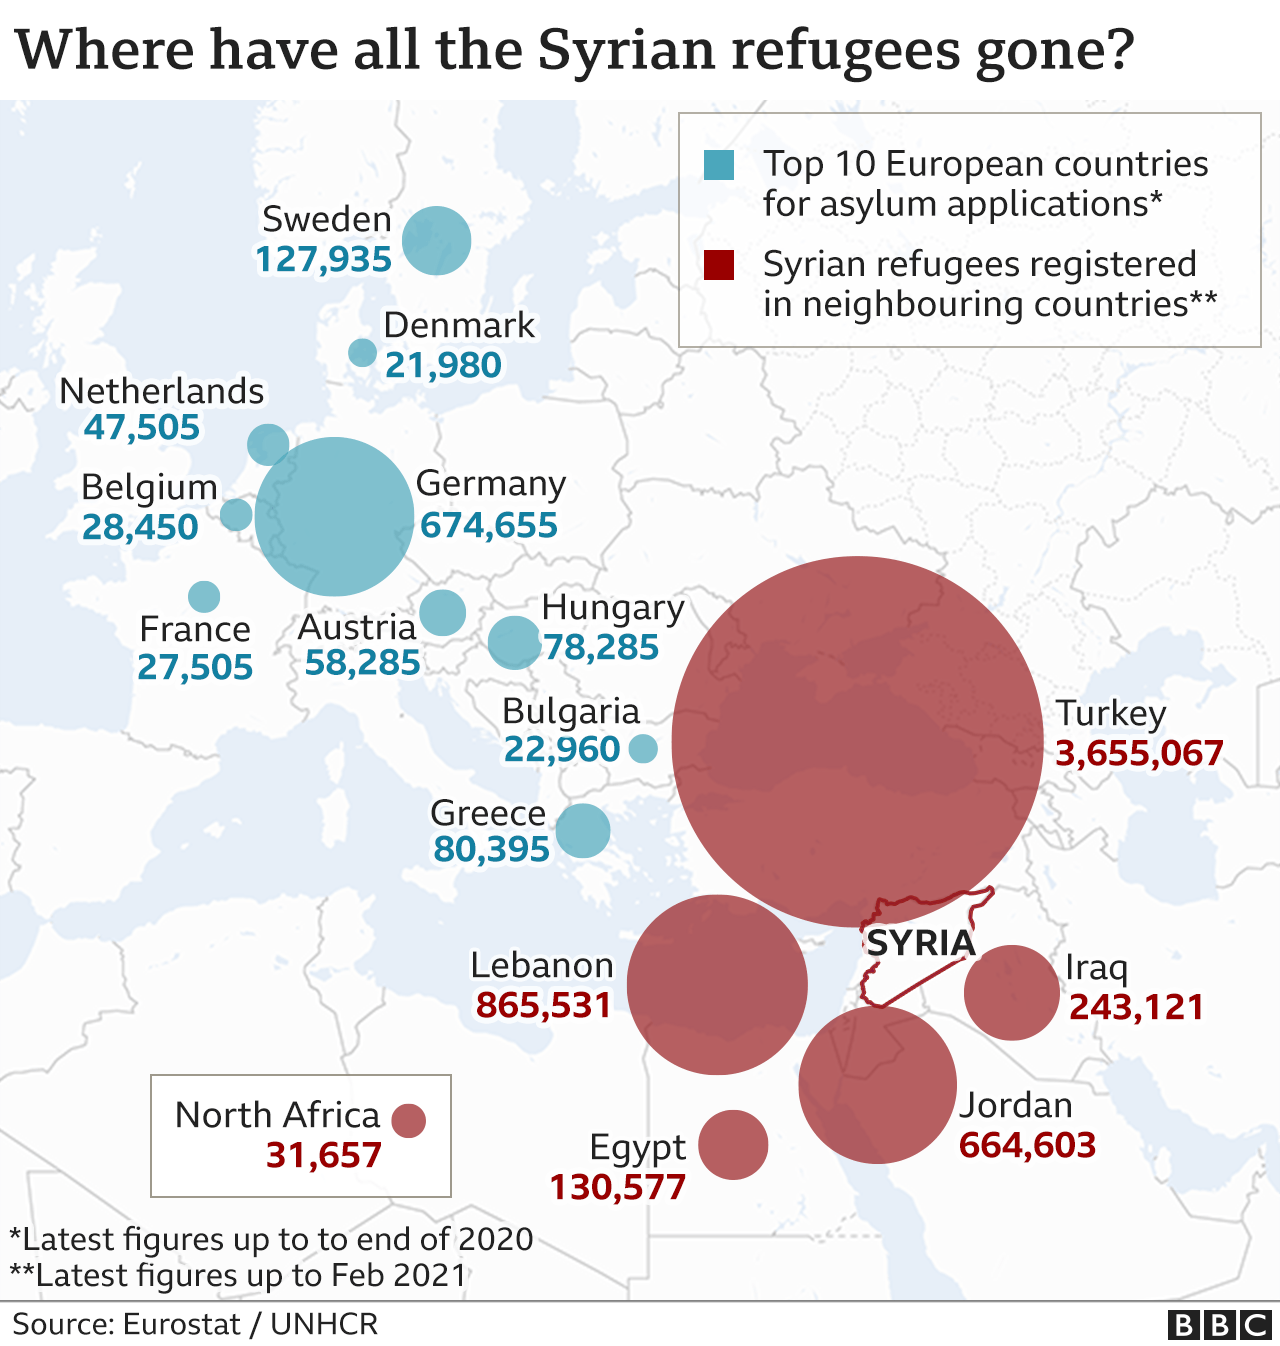 Chart showing locations of Syrian refugees in Middle East, North Africa and Europe